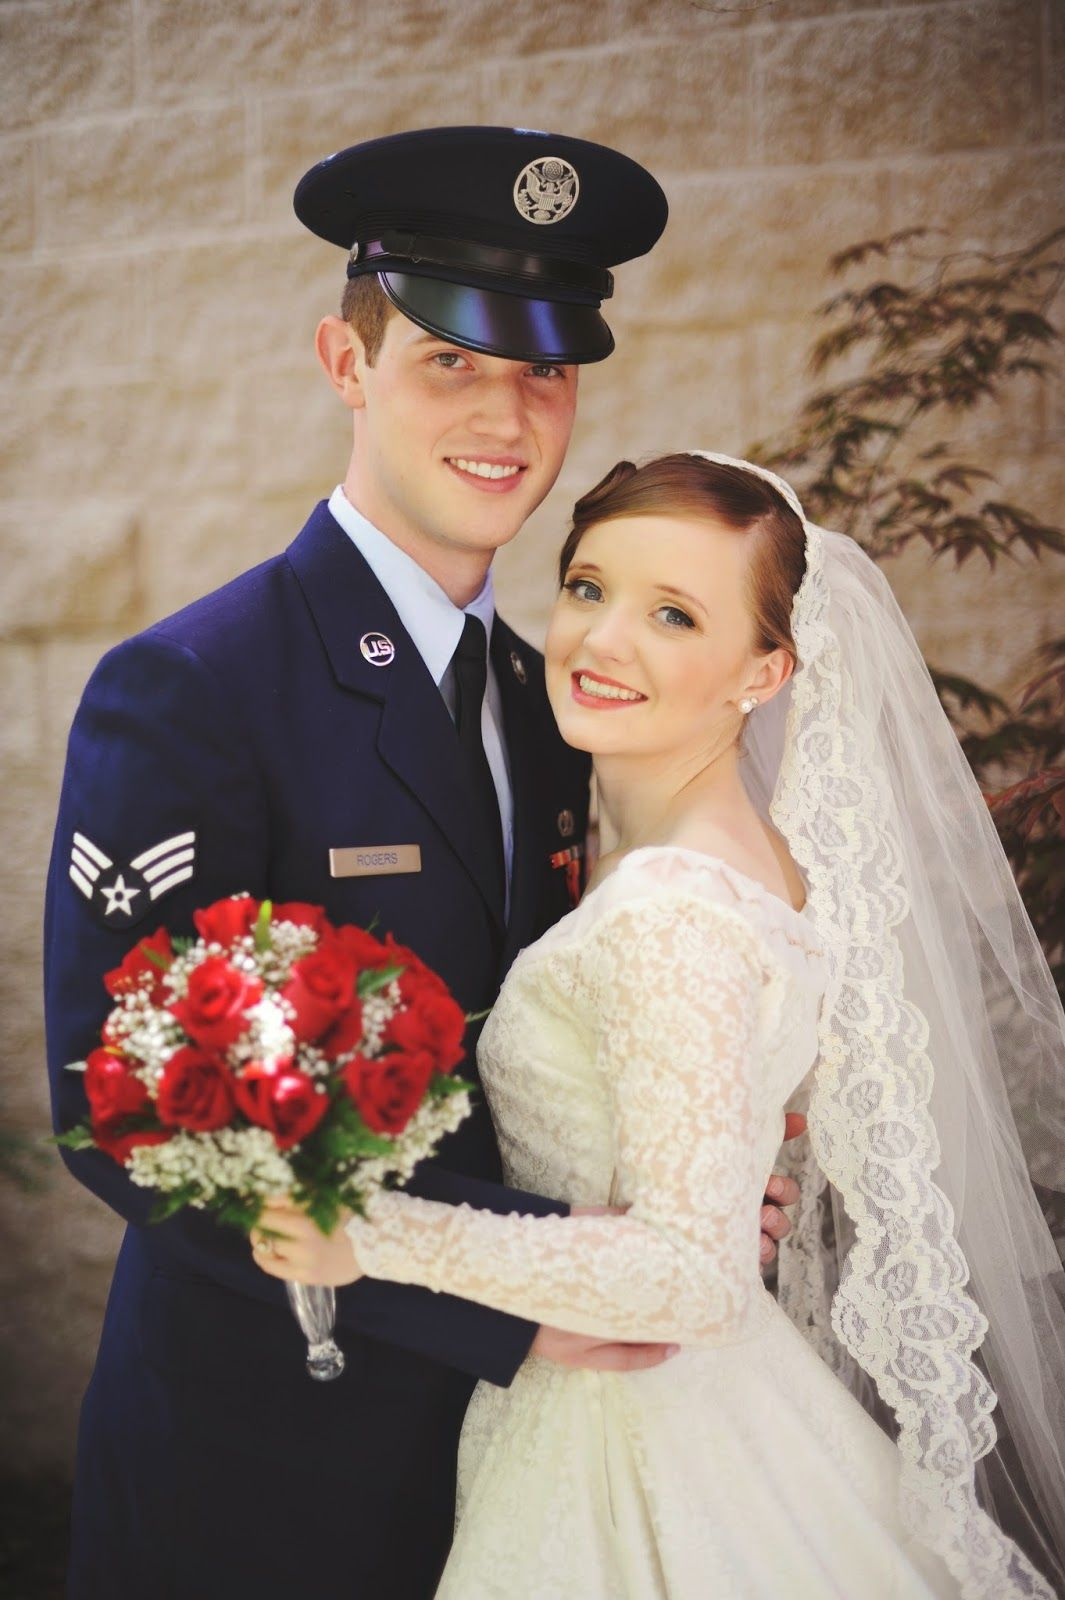 Flashback Summer Wedding Pictures First Post Retro 1940s Military Air Force Photo Shoot